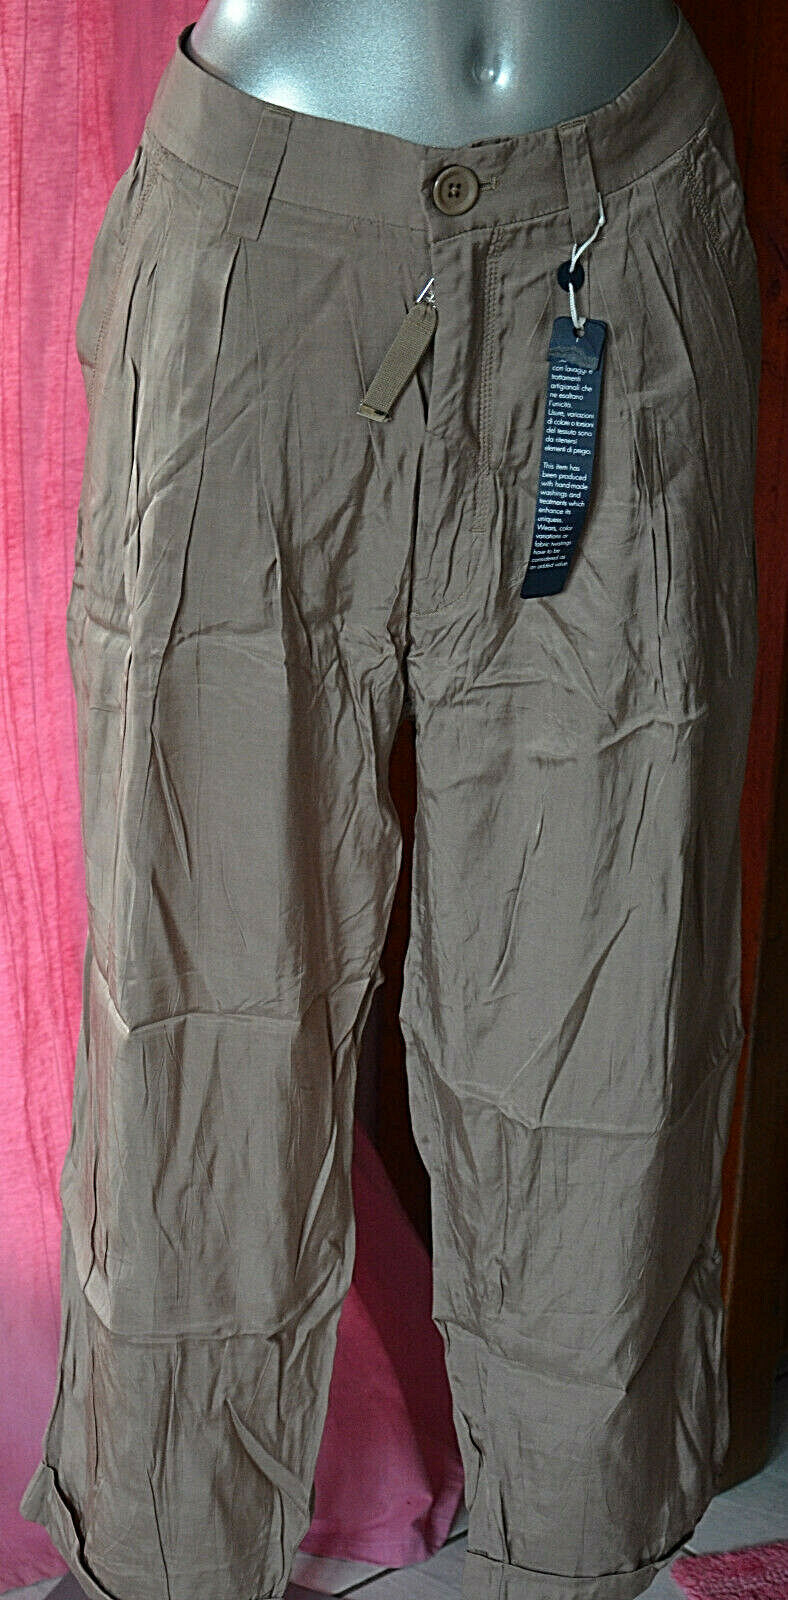 Pantalon à pinces satiné taupe HIGH USE ex girbaud Größe 44 fr 42d 48i W34 NEUF